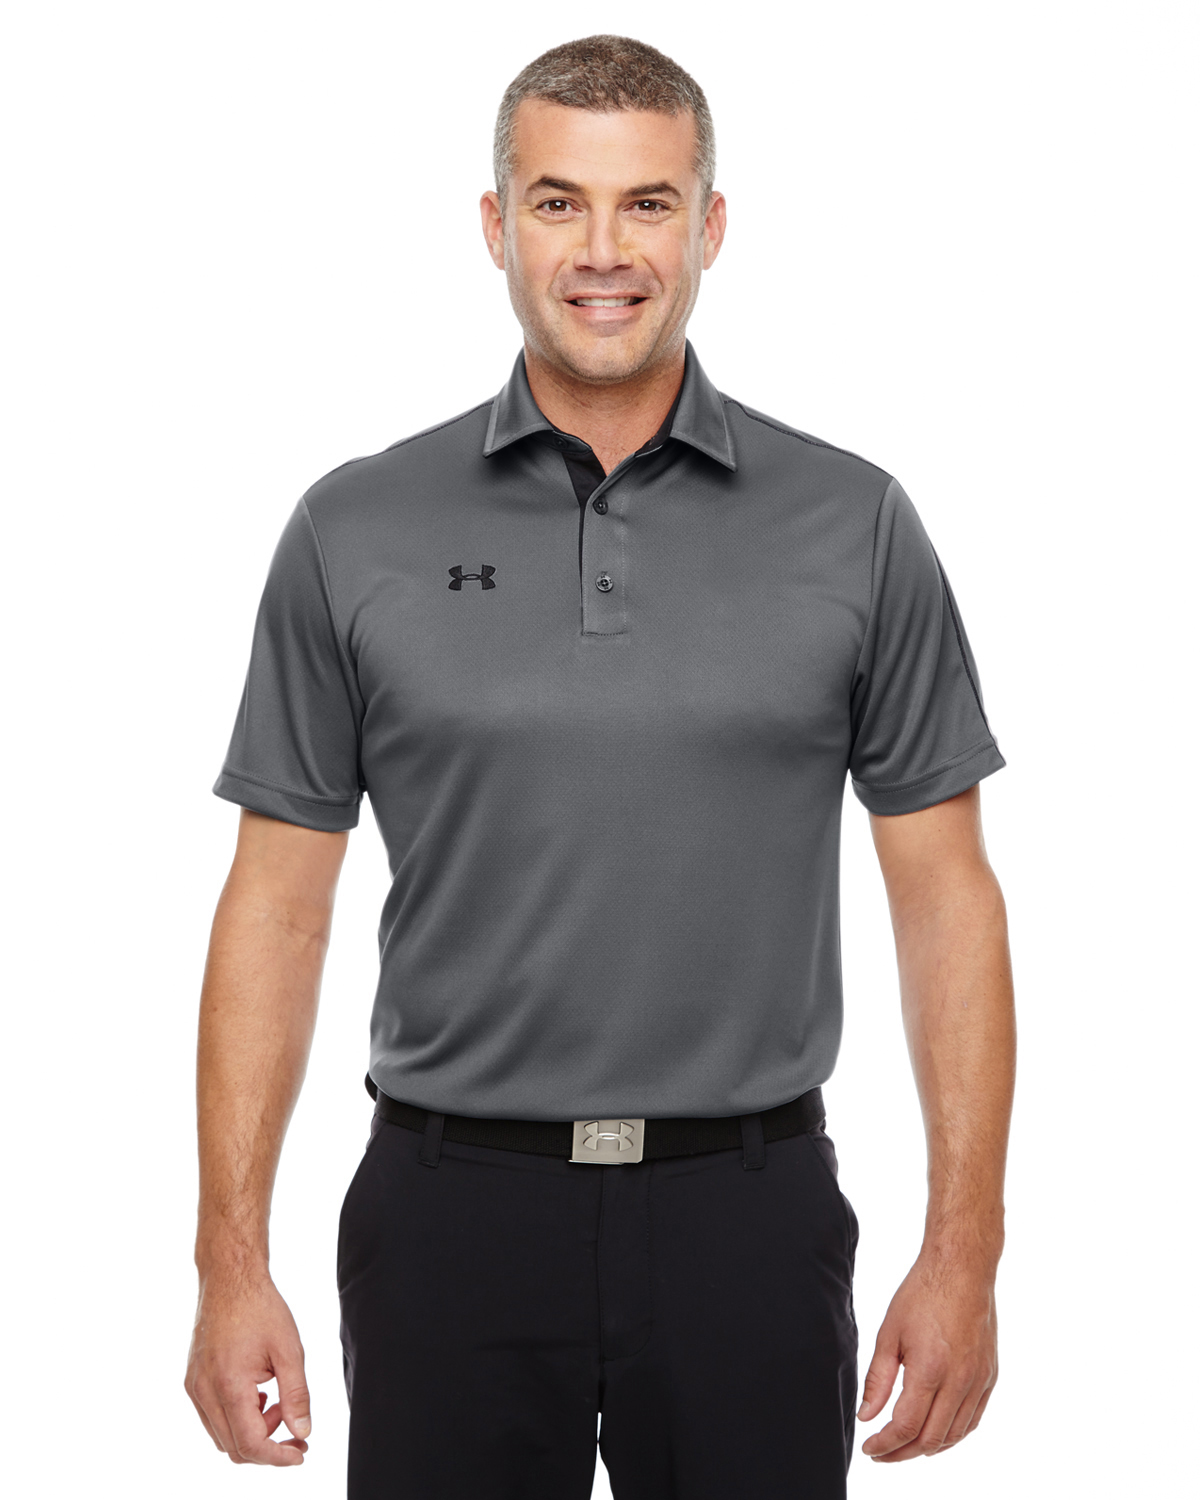 Under Armour Apparel Line for Corporate Branding